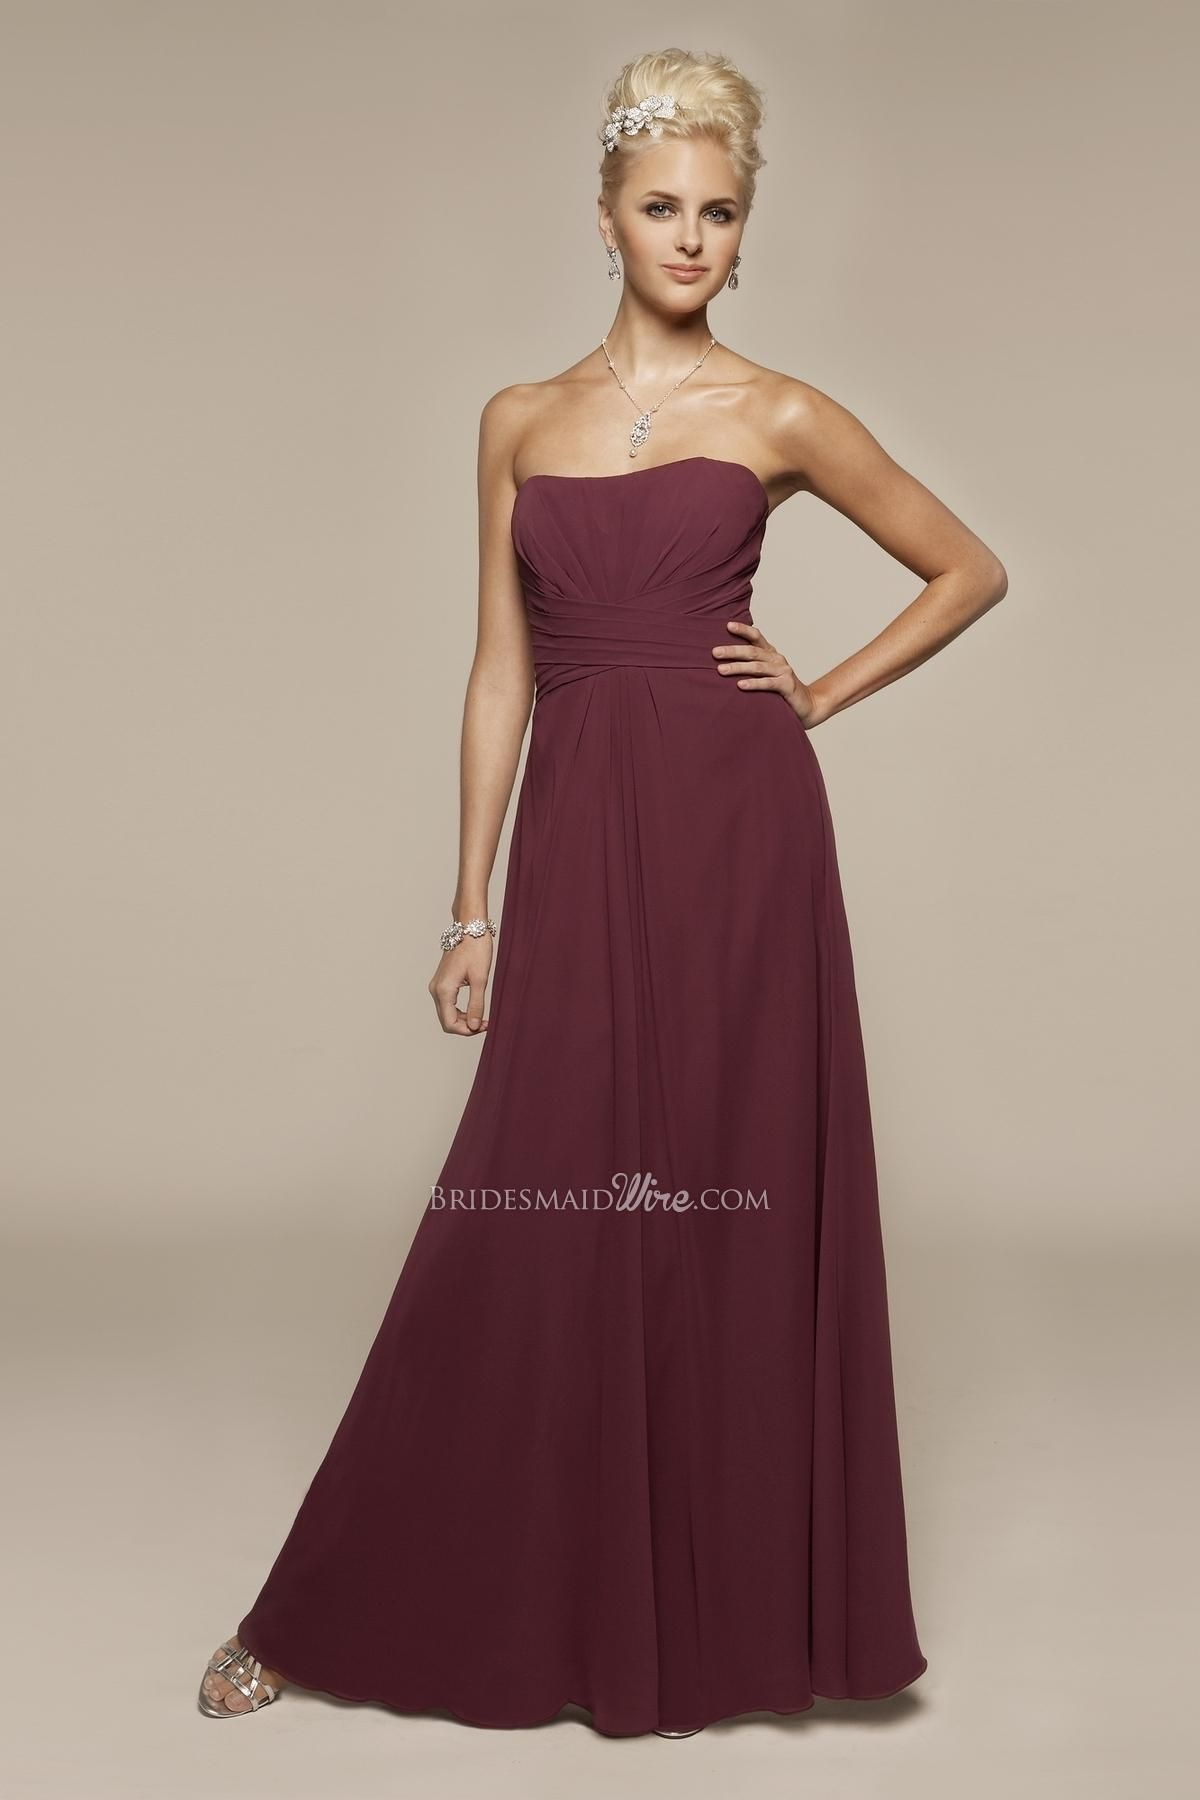 Strapless dark magenta chiffon aline long bridesmaid gown